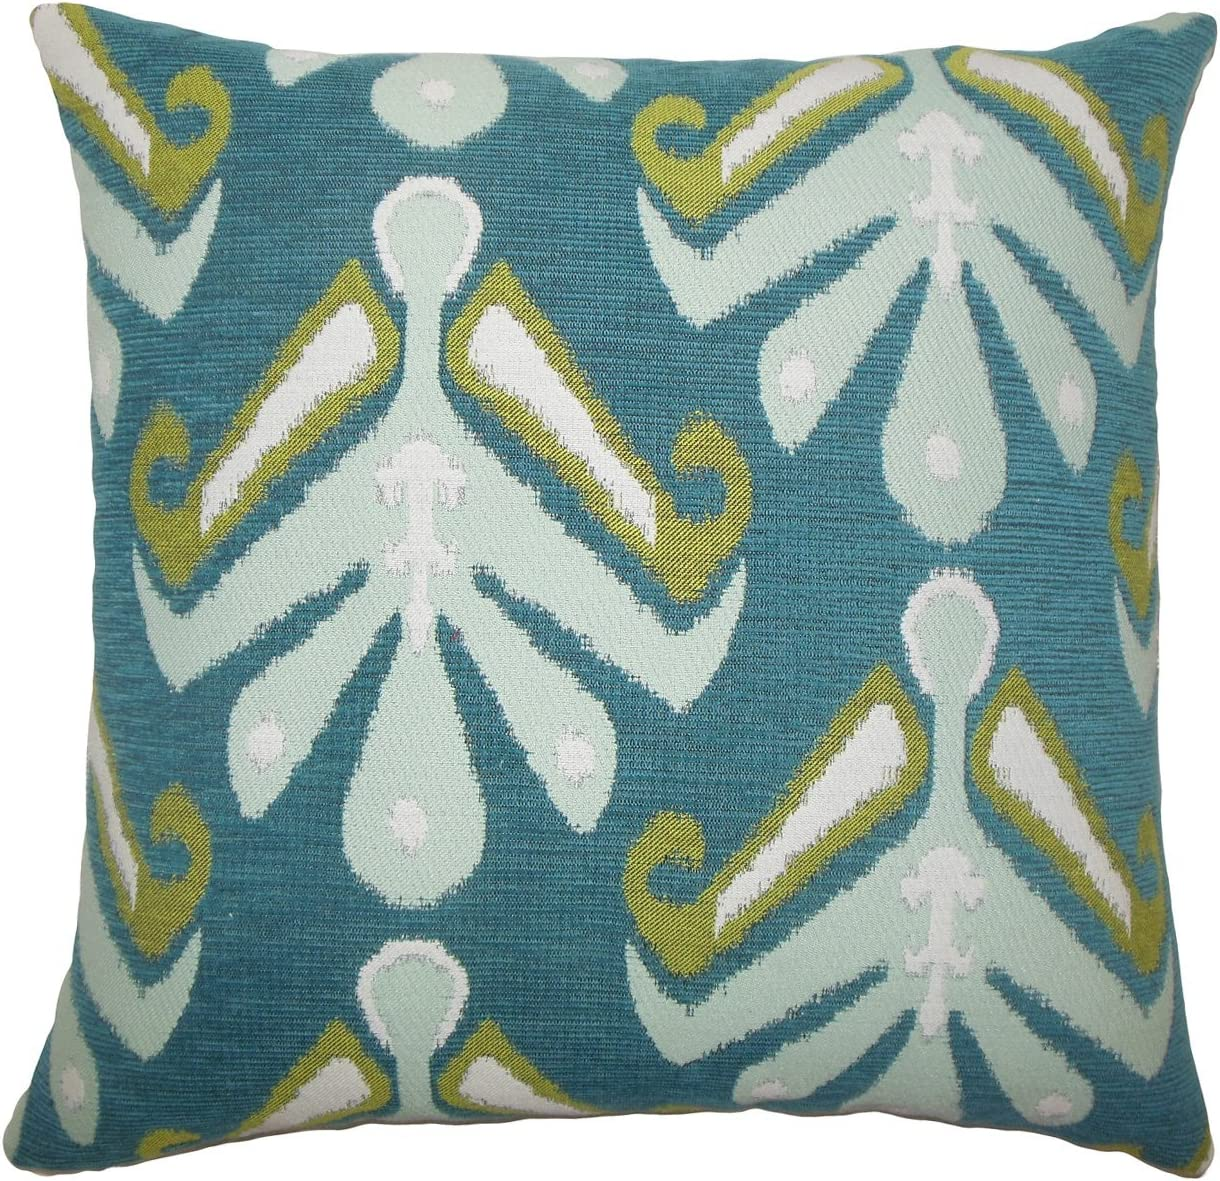 The Pillow Collection Berke Ikat Bedding Sham Indigo King//20 x 36